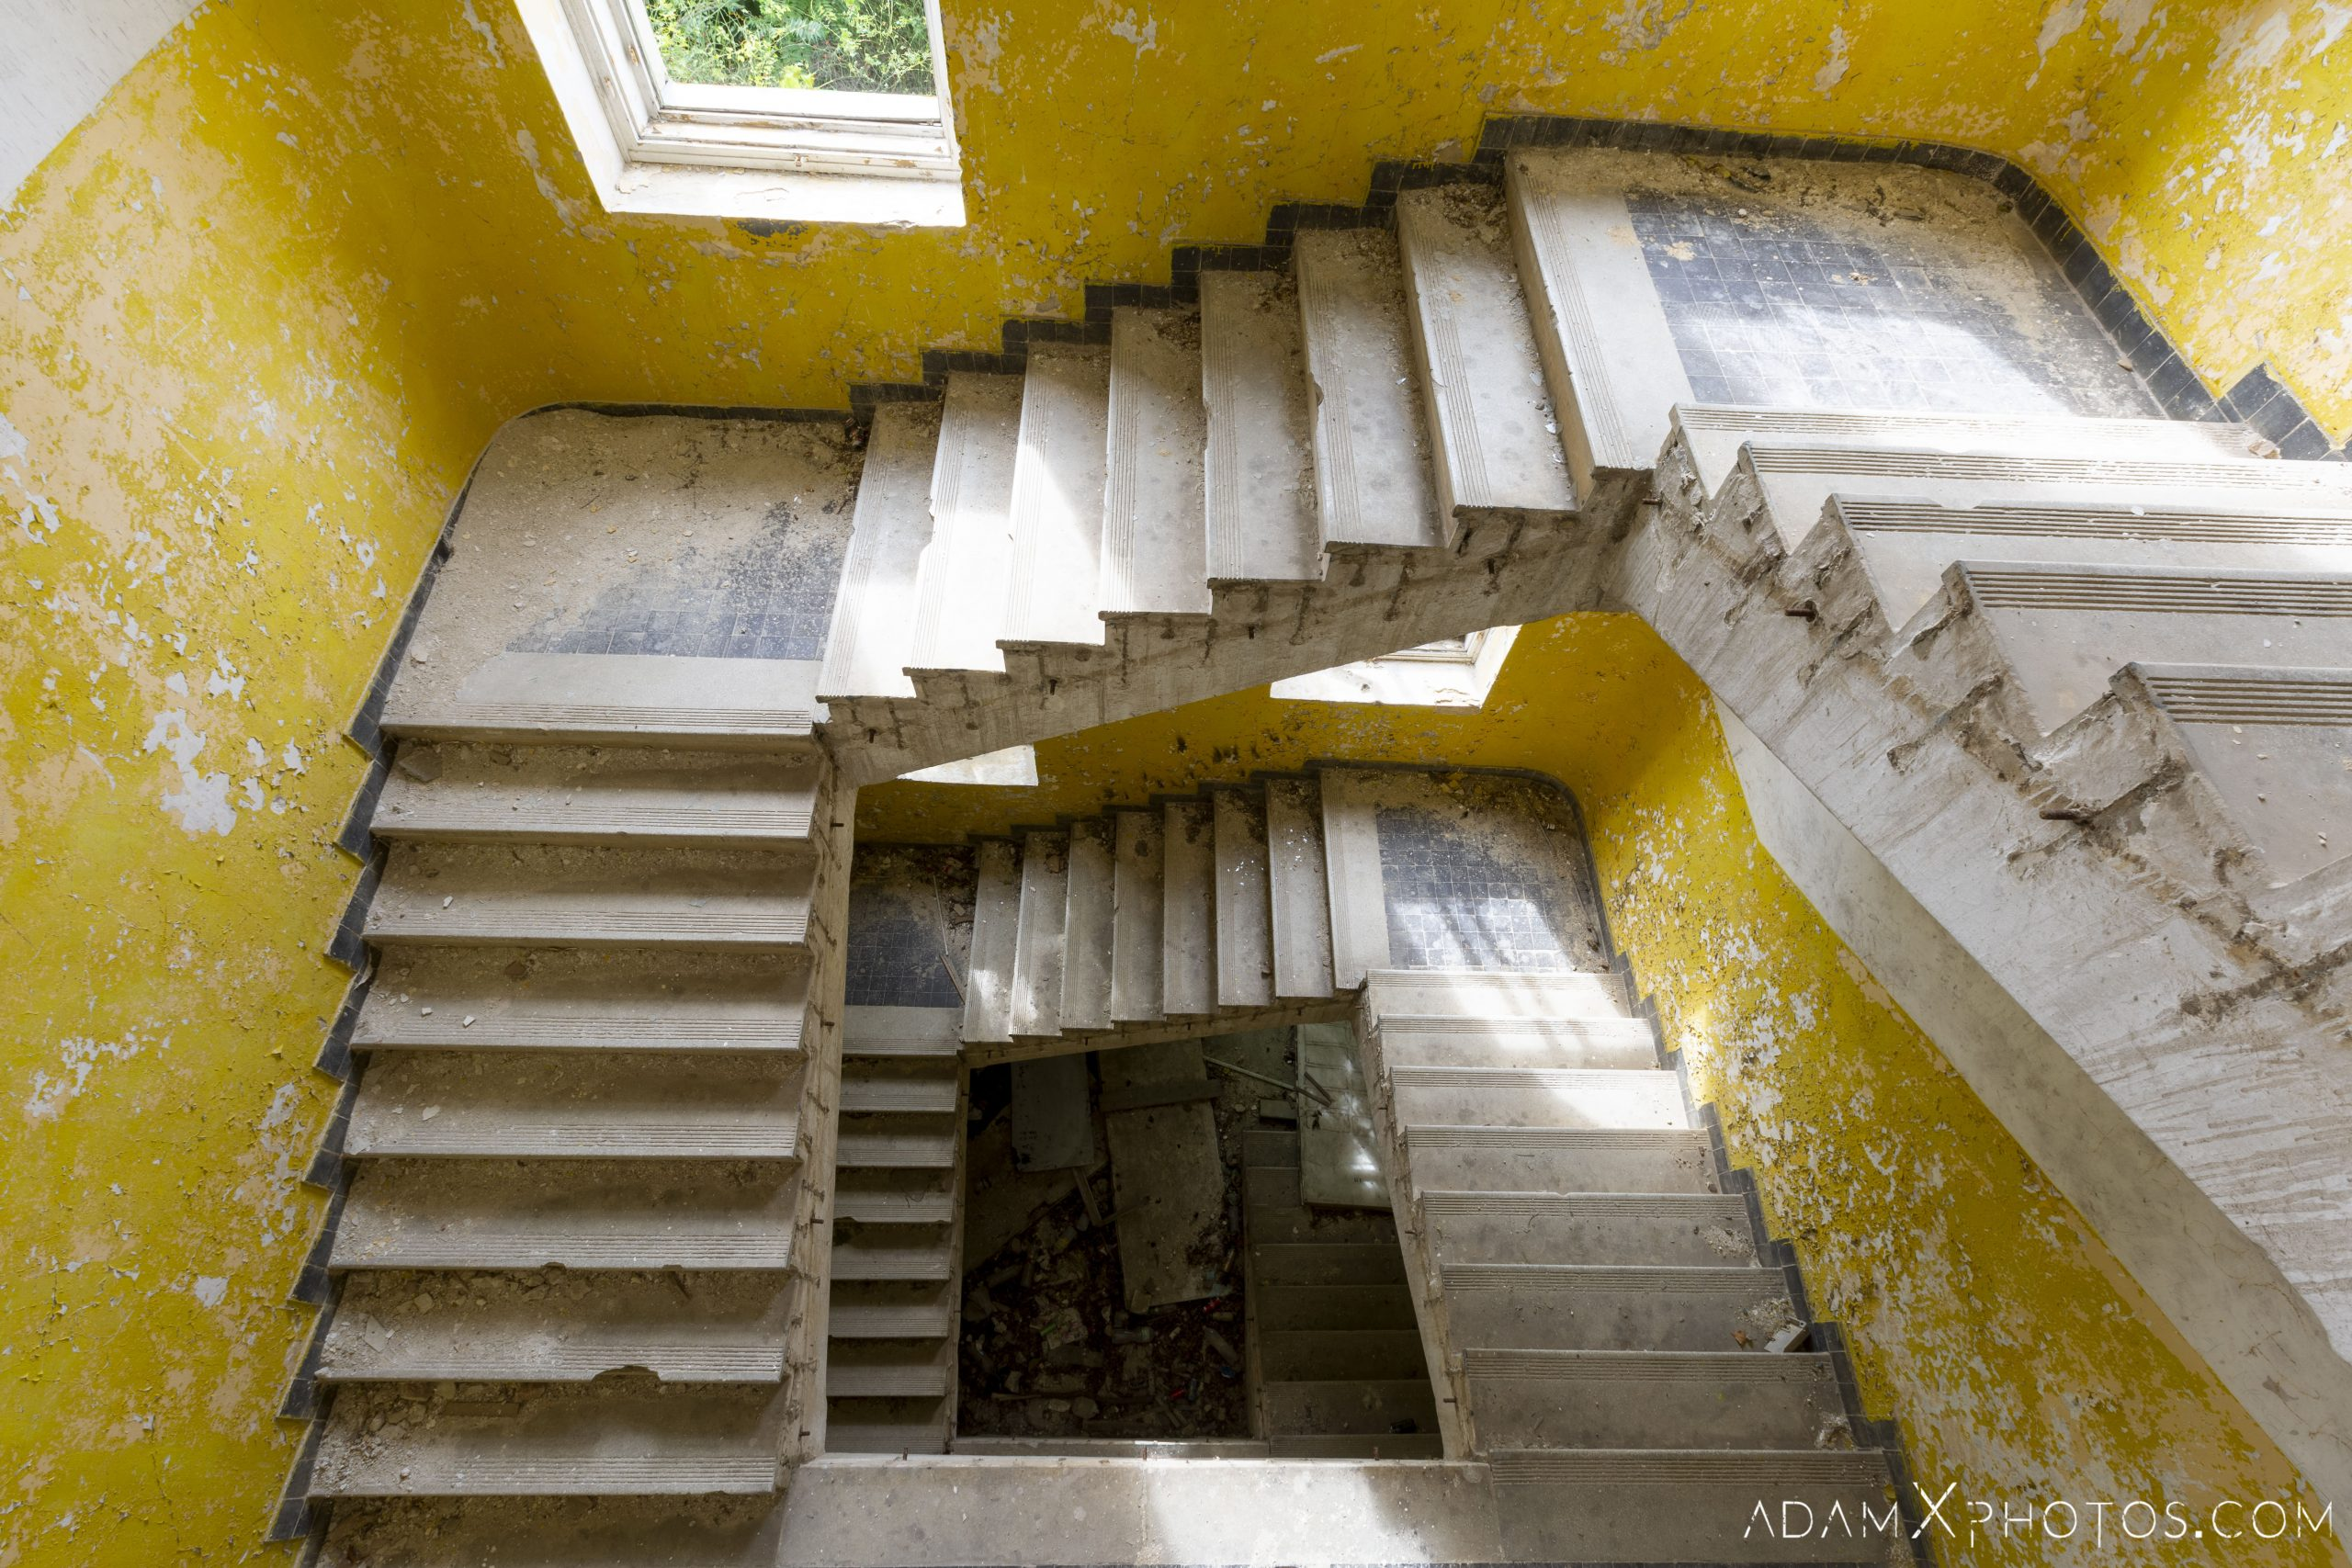 Looking down yellow staircase stairs stairwell Hajmaskér Barracks Hungary Adam X Urbex Urban Exploration Access 2018 Abandoned decay ruins lost forgotten derelict location creepy haunting eerie